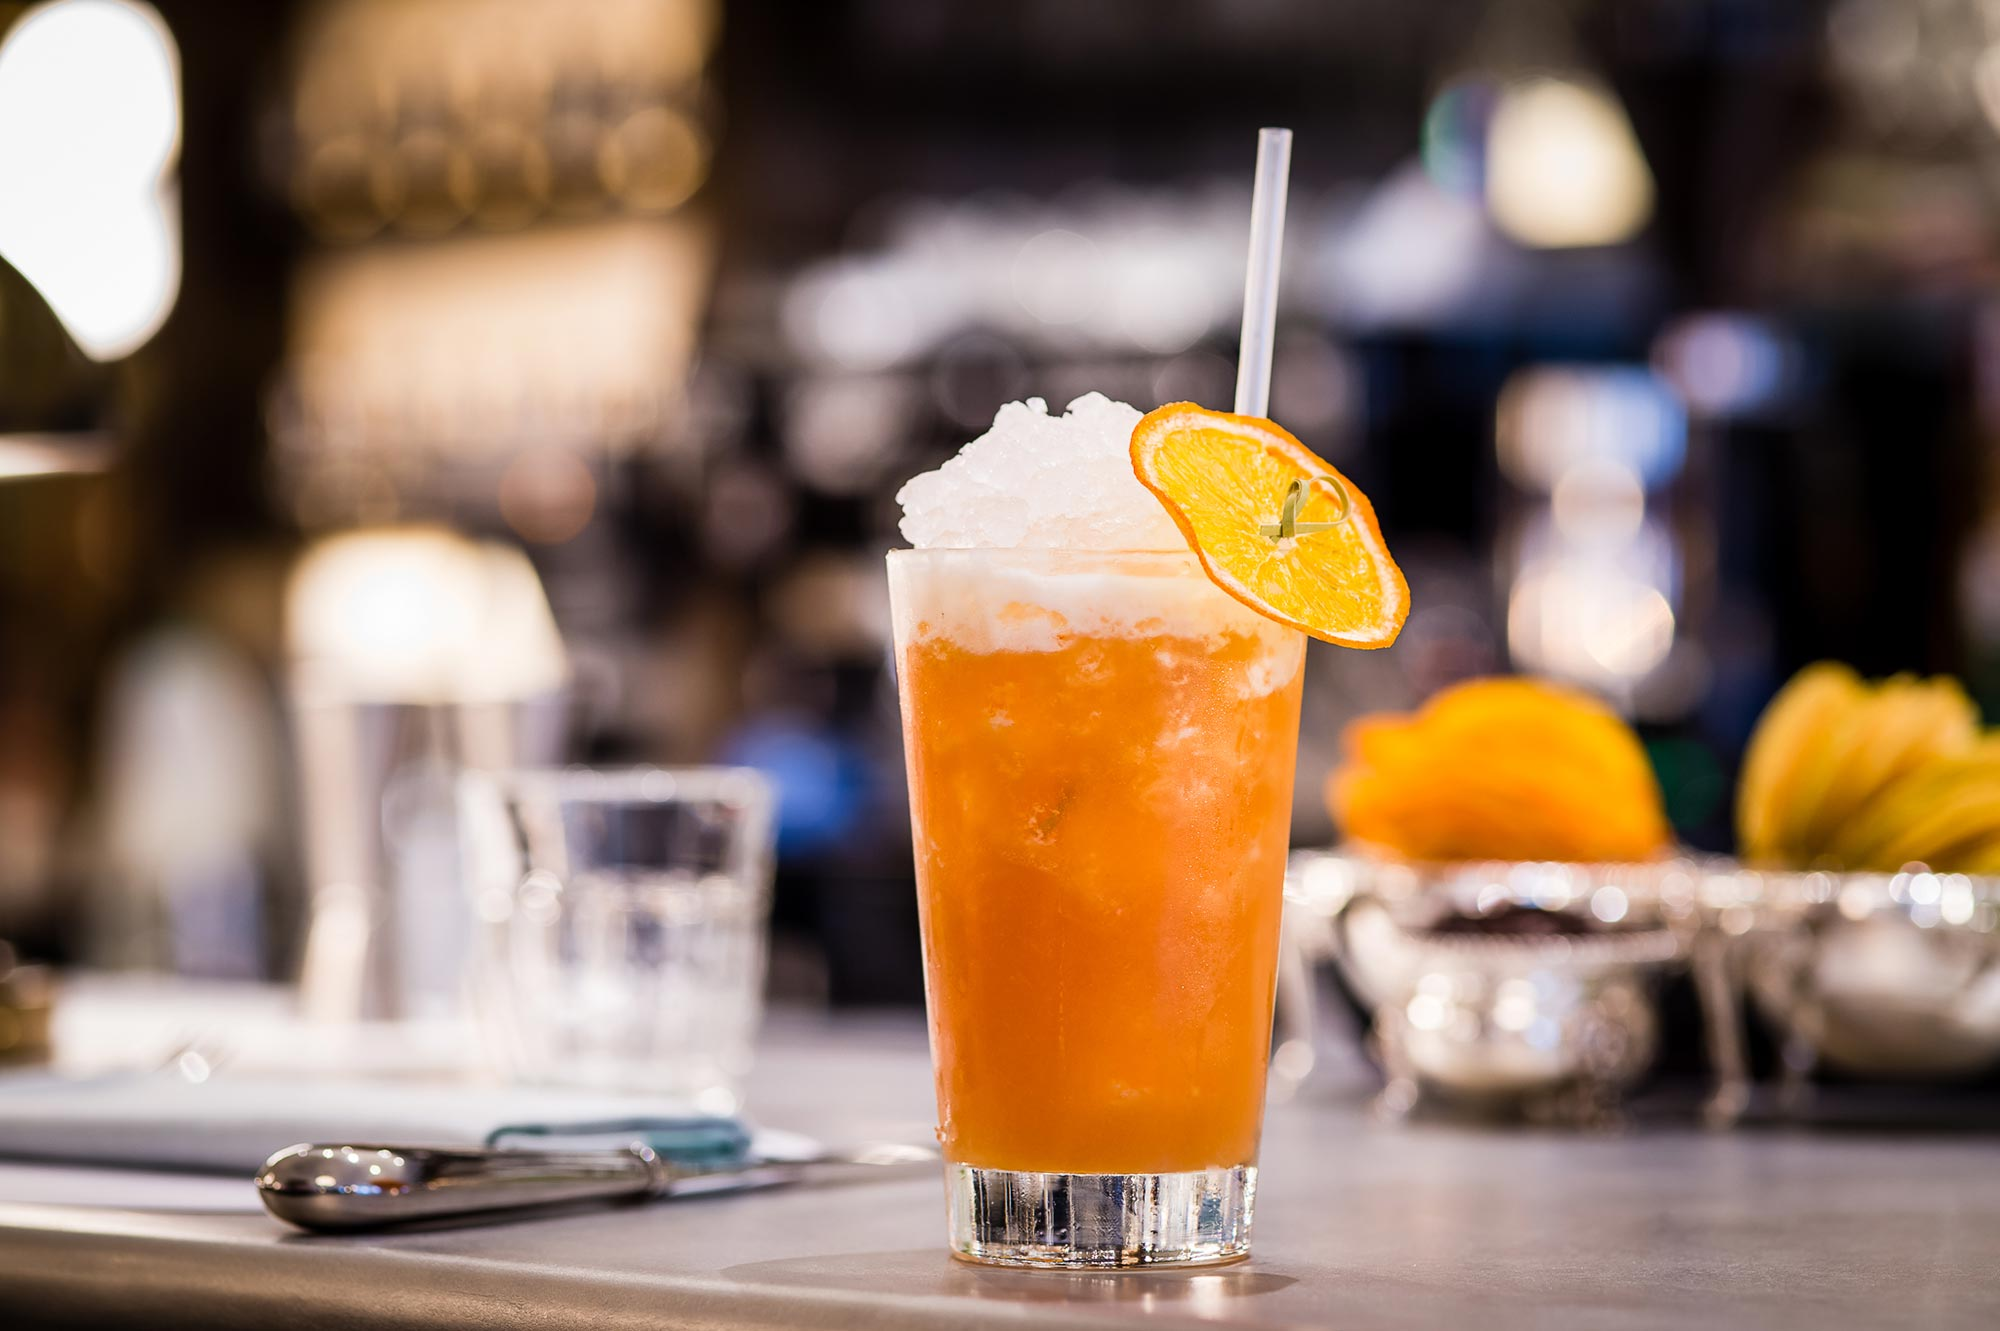 THE IVY KENSINGTON BRASSERIE - PEACH AND ELDERFLOWER ICE TEA. - The Ivy Kensington Brasserie